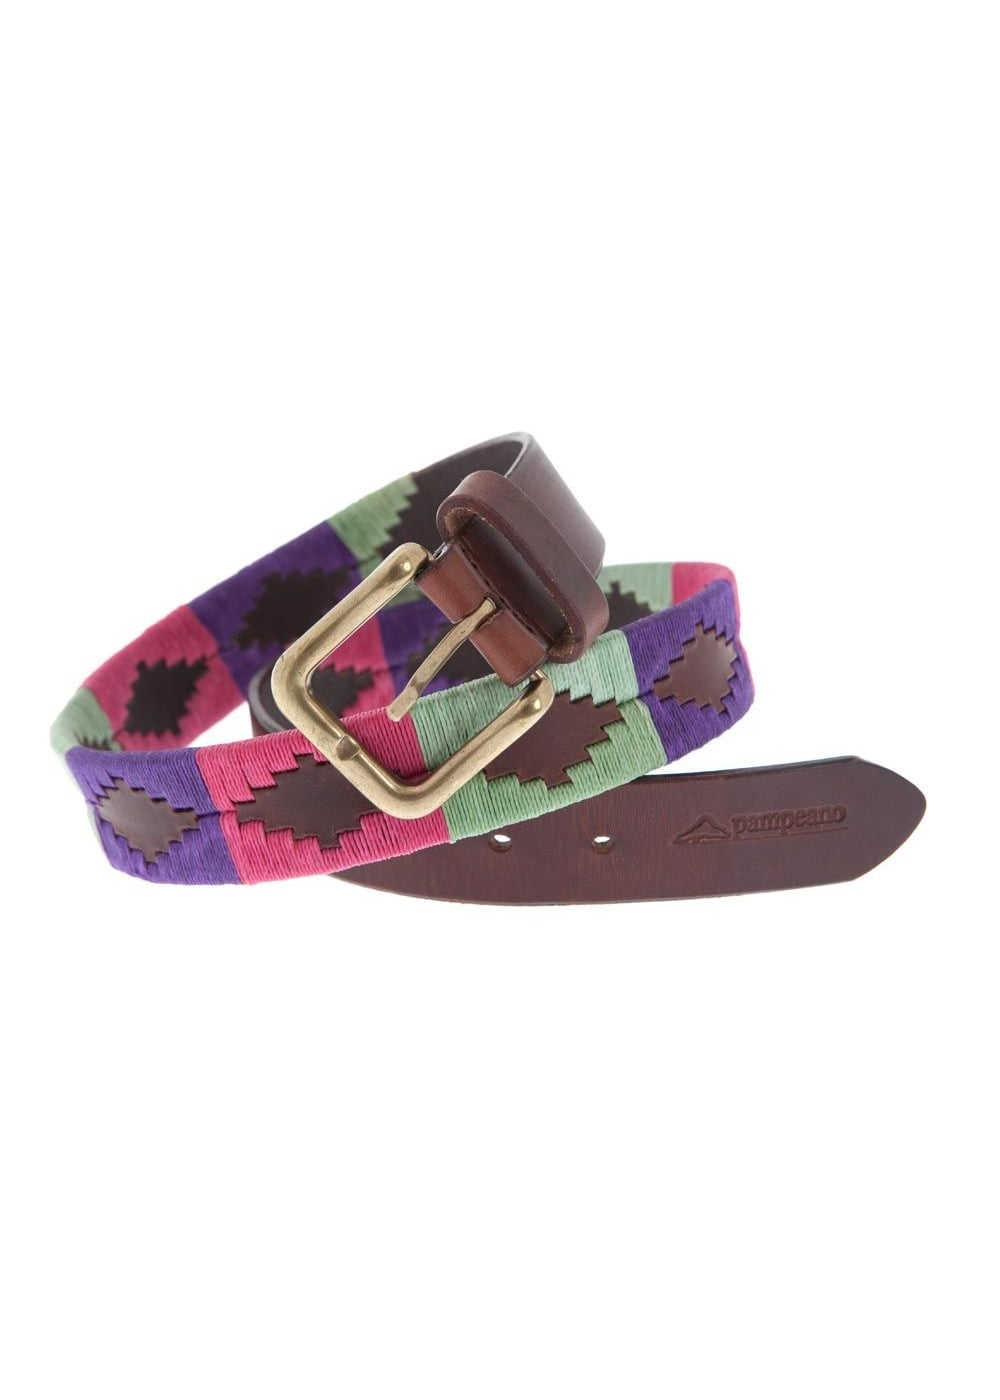 Pampeano Escocia 1.5 Polo Belt Large Image